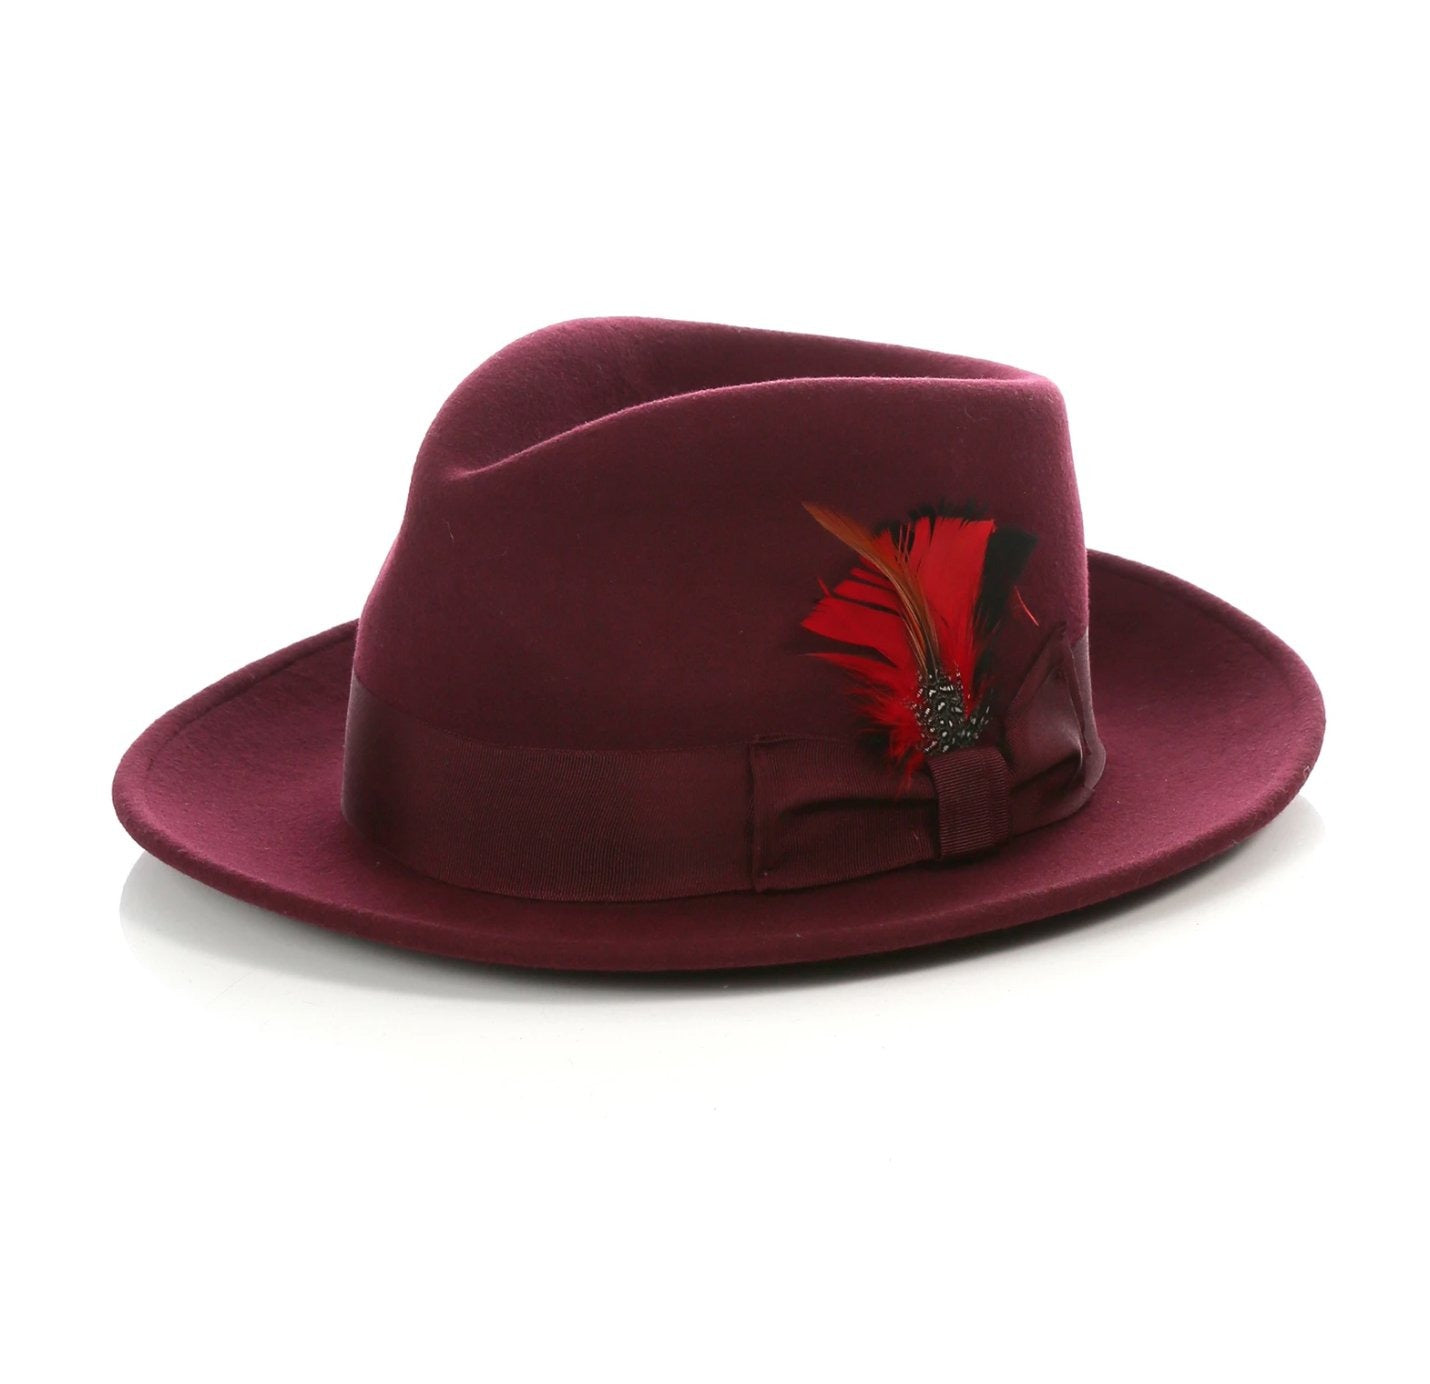 Mens Gangster Untouchable Fedora Hat in Burgundy